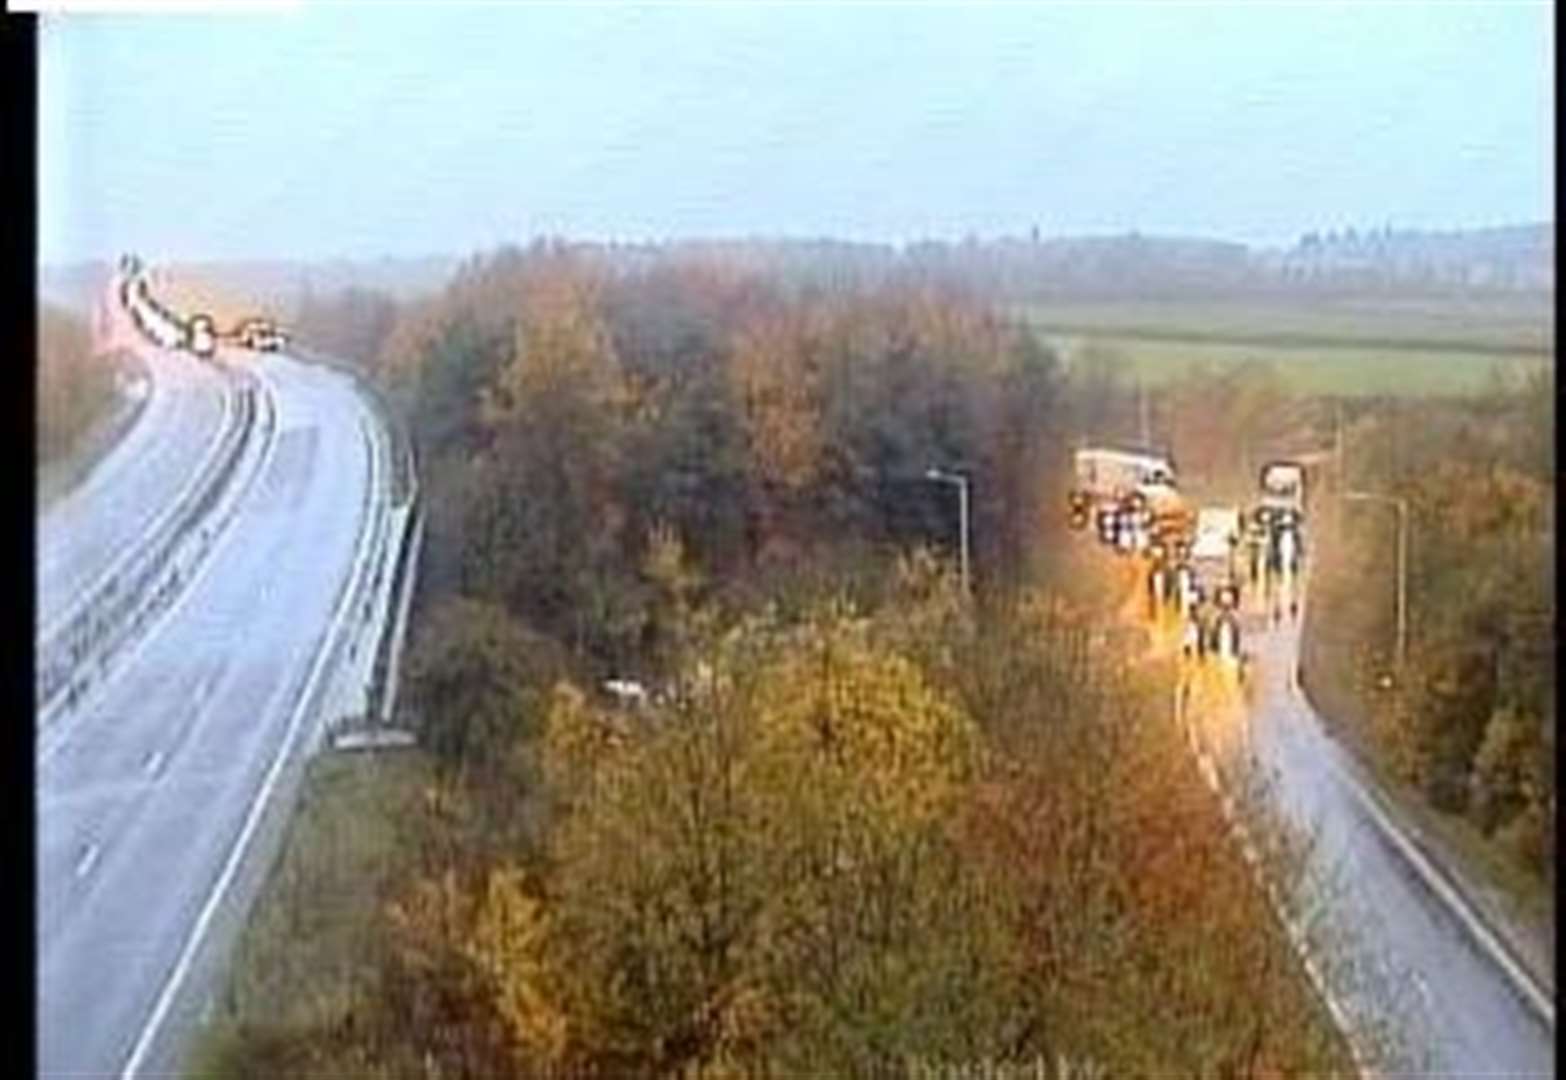 A14 reopens after lorry crash in Bury St Edmunds